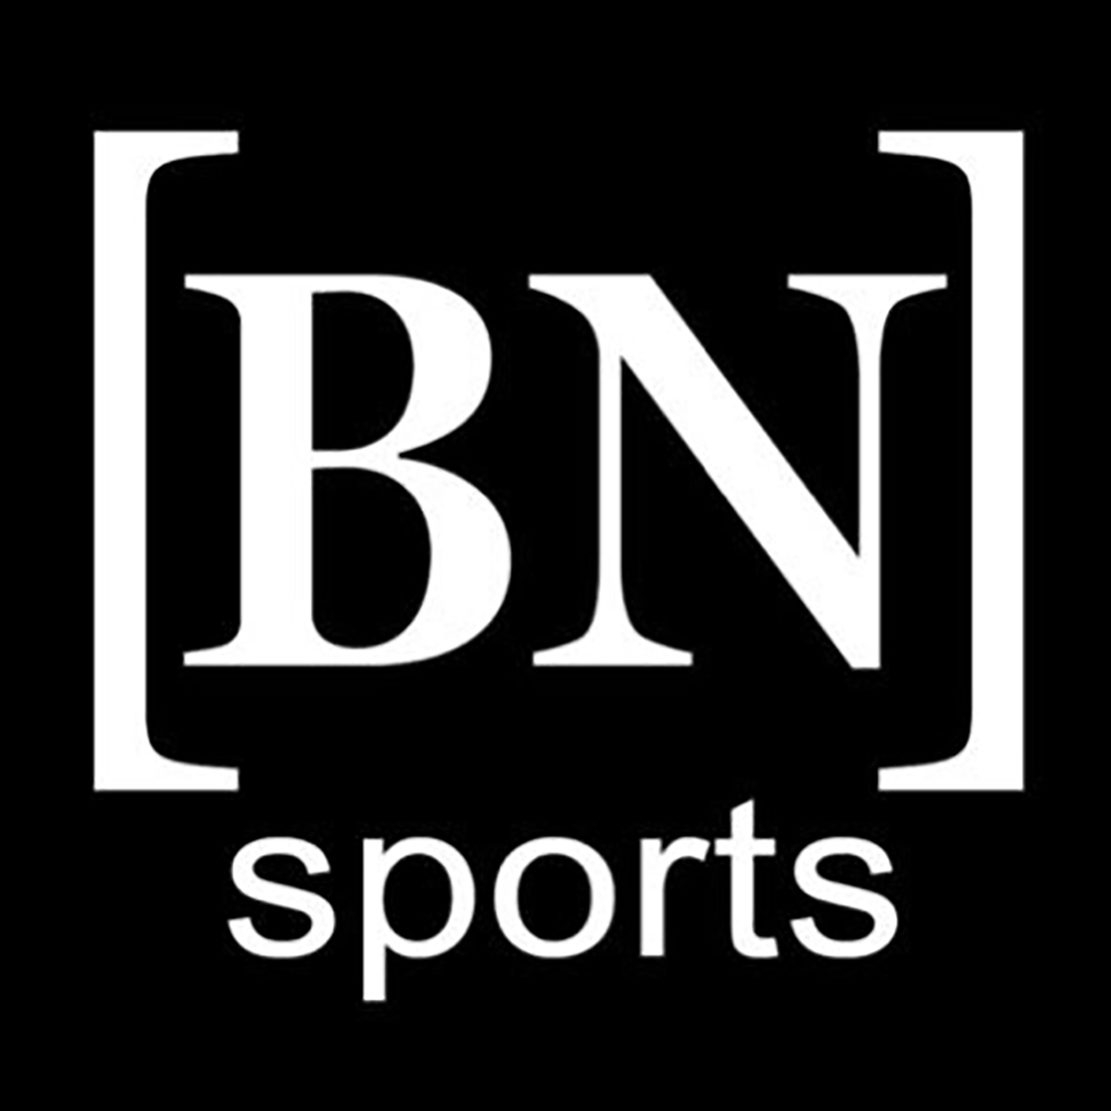 BN Sports twitter logo for staff picks.